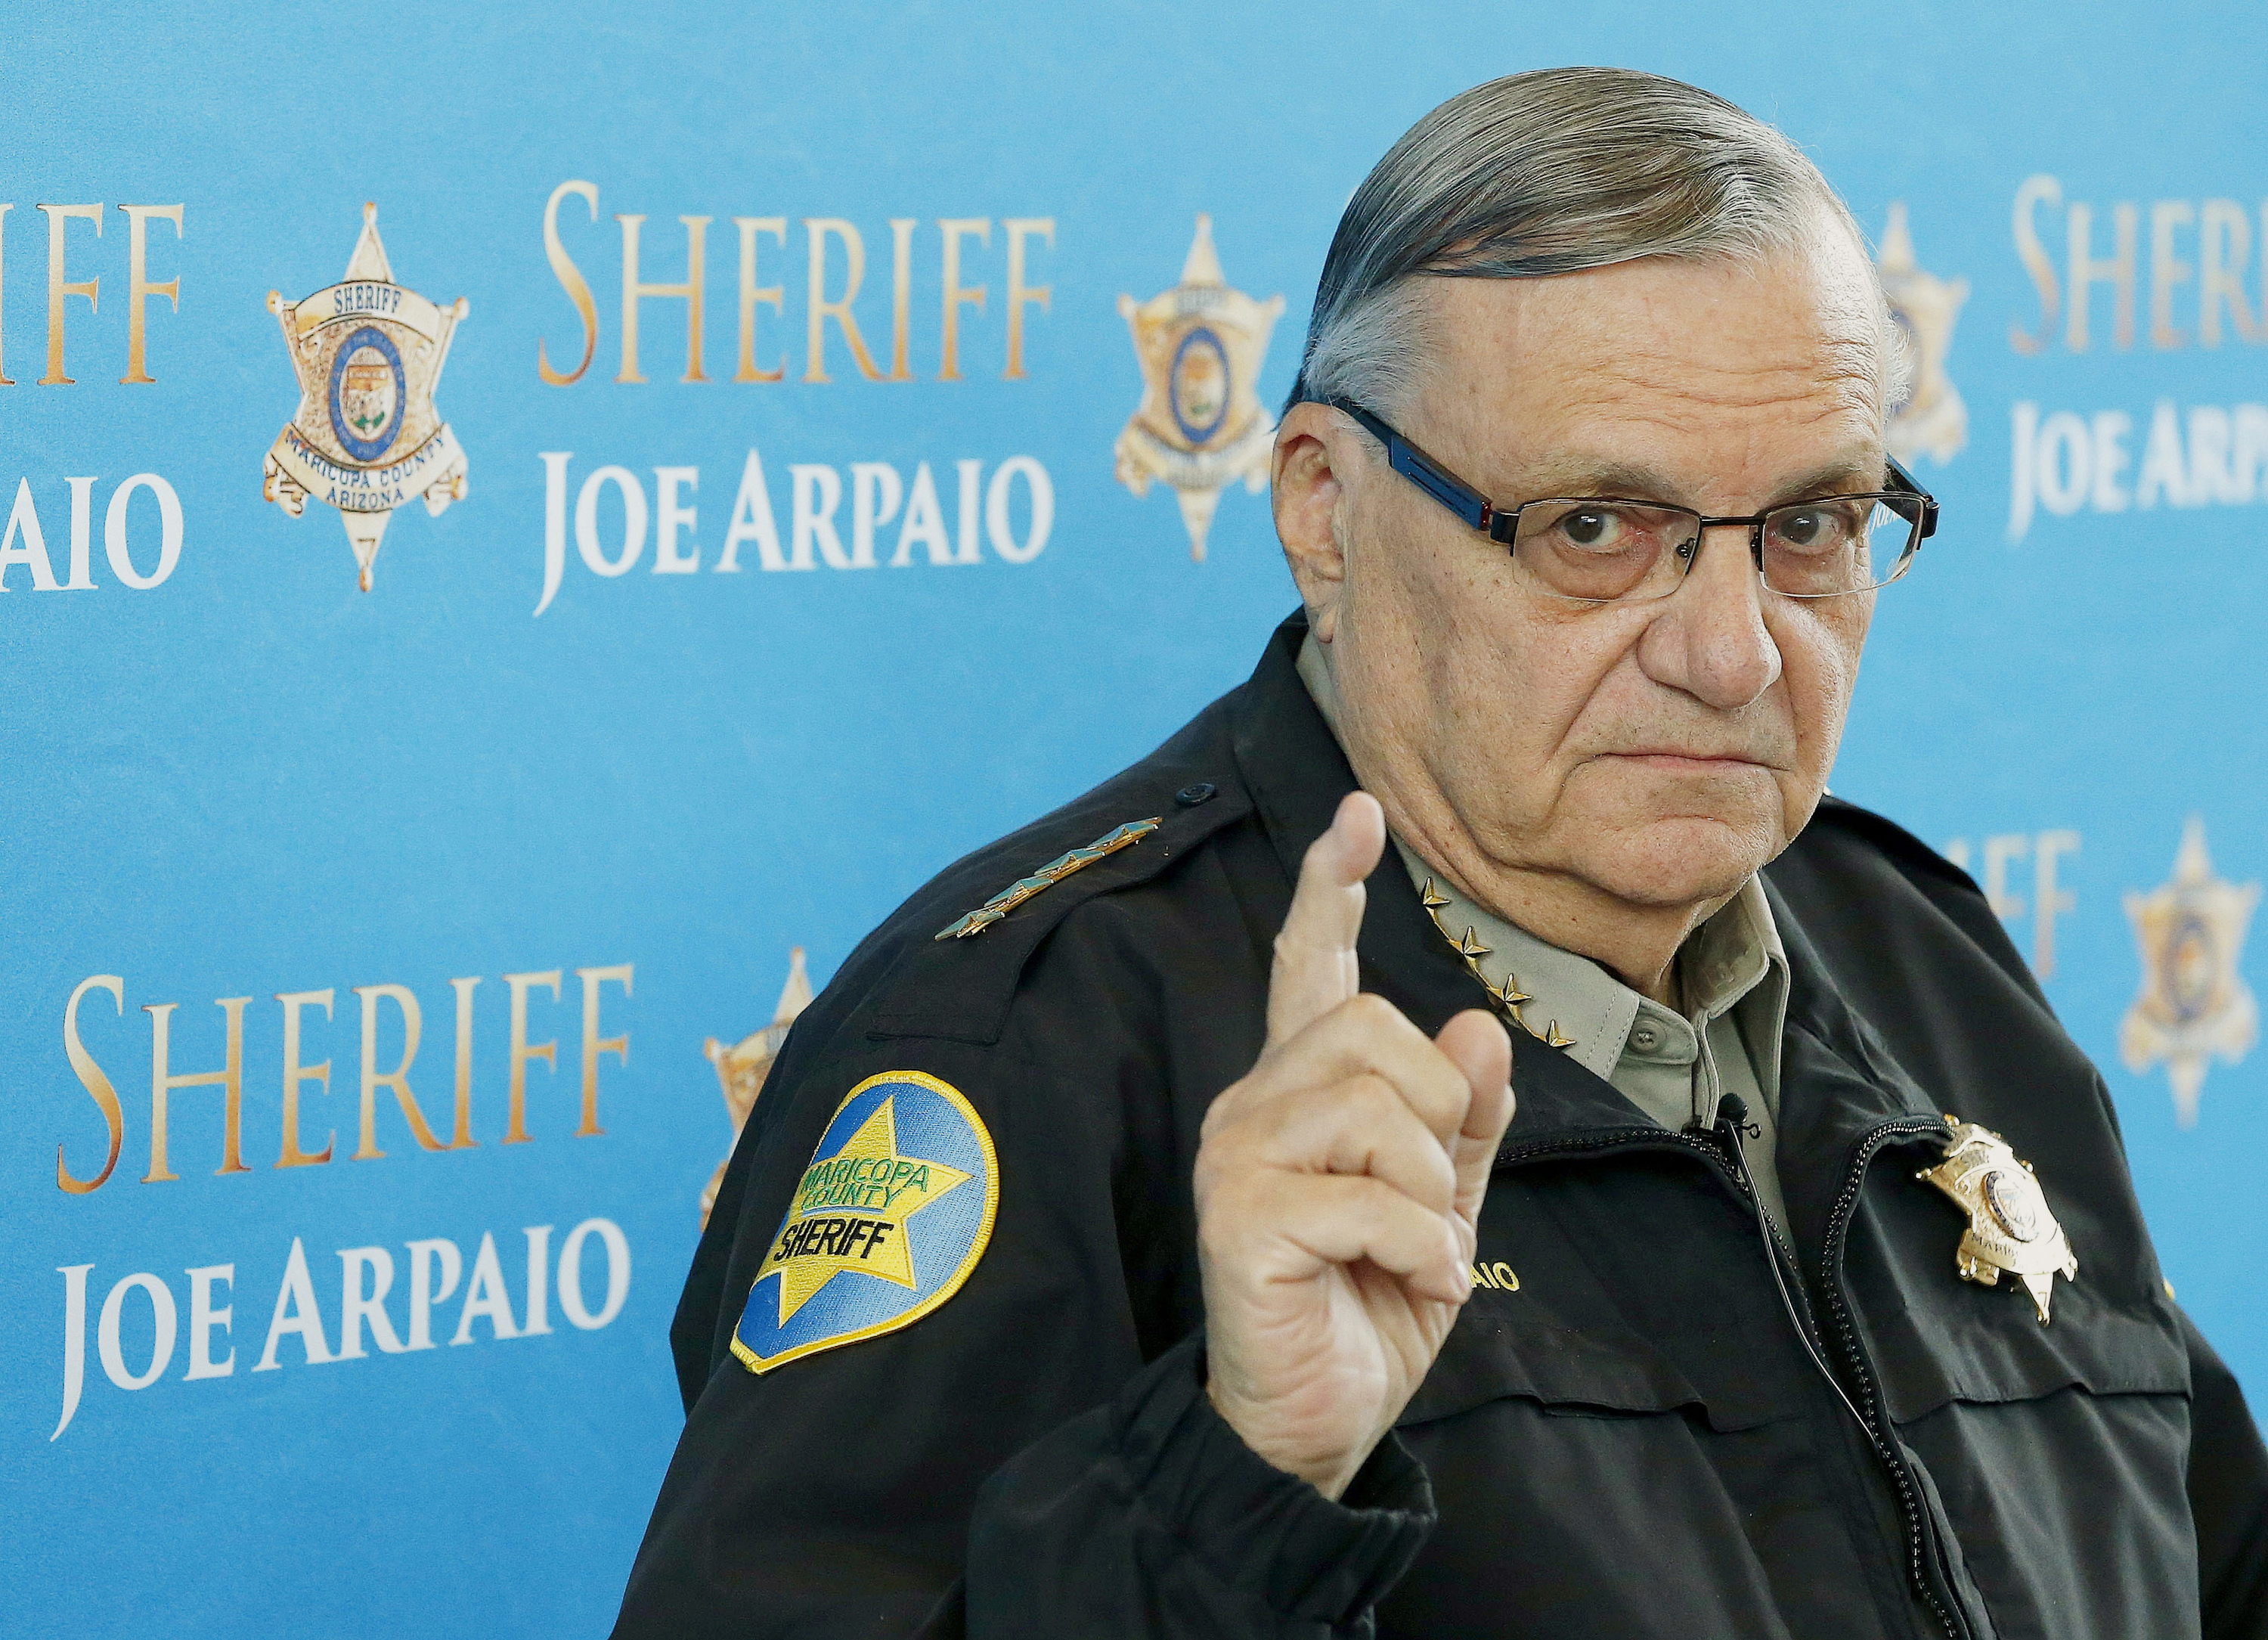 Joe arpaio still investigating obamas birth certificate im not joe arpaio still investigating obamas birth certificate im not going to give up washington times xflitez Gallery